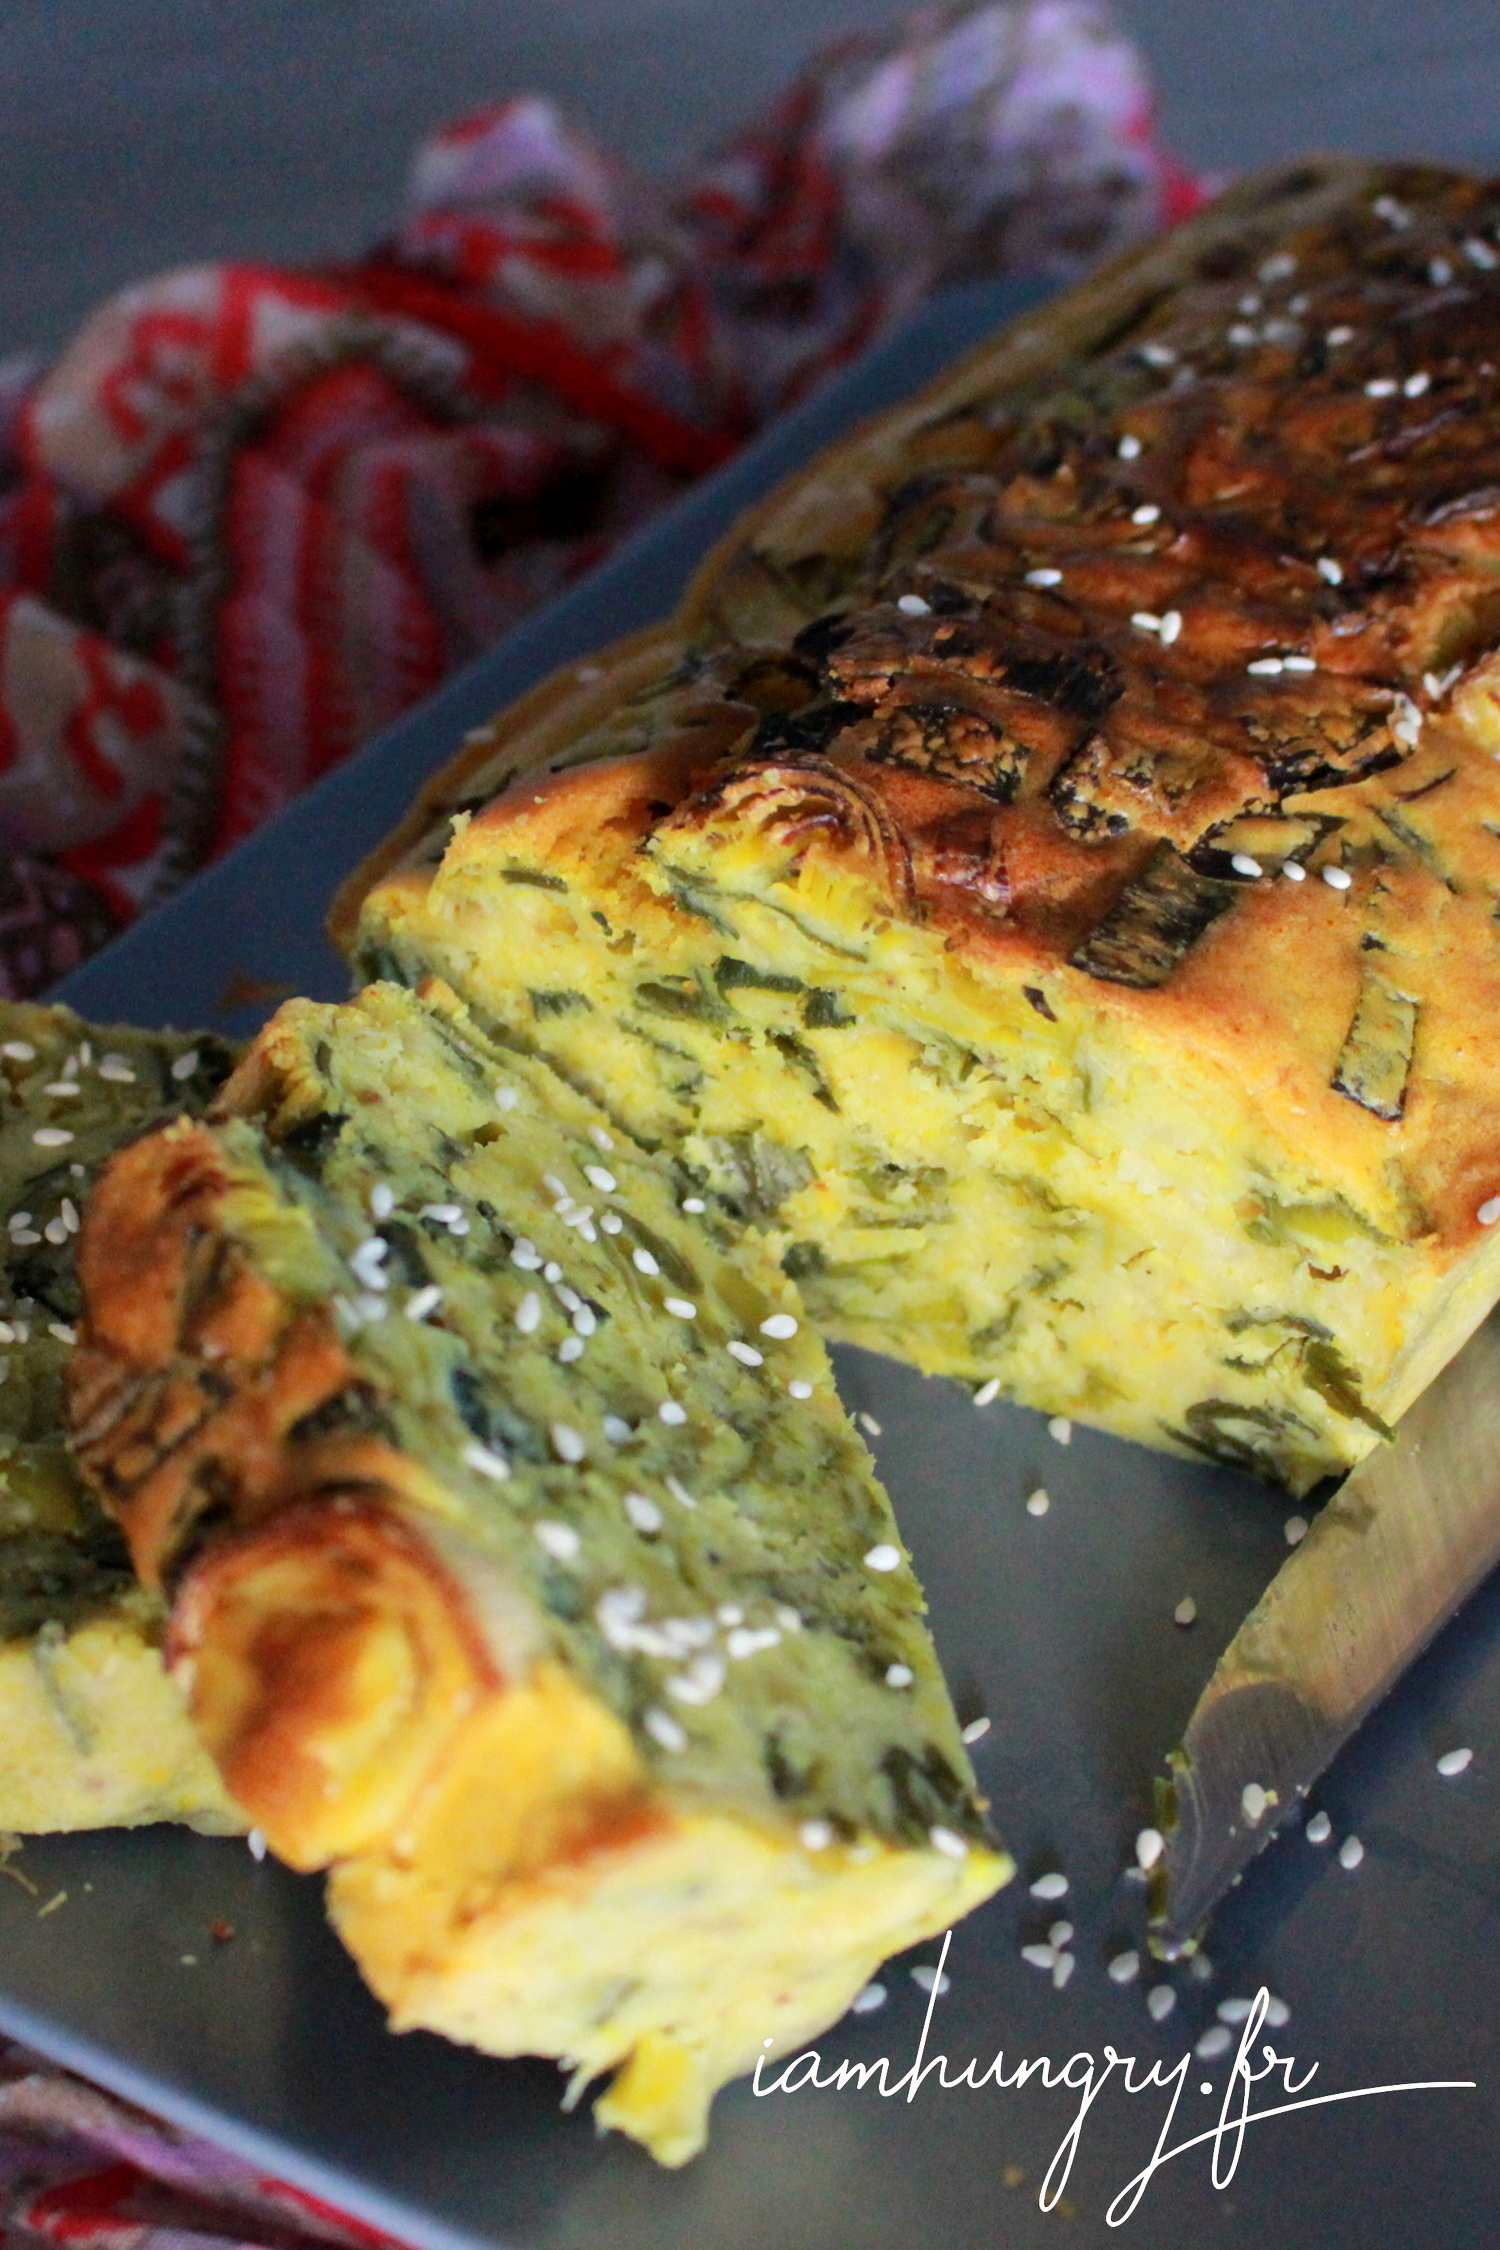 Leek and curry cake